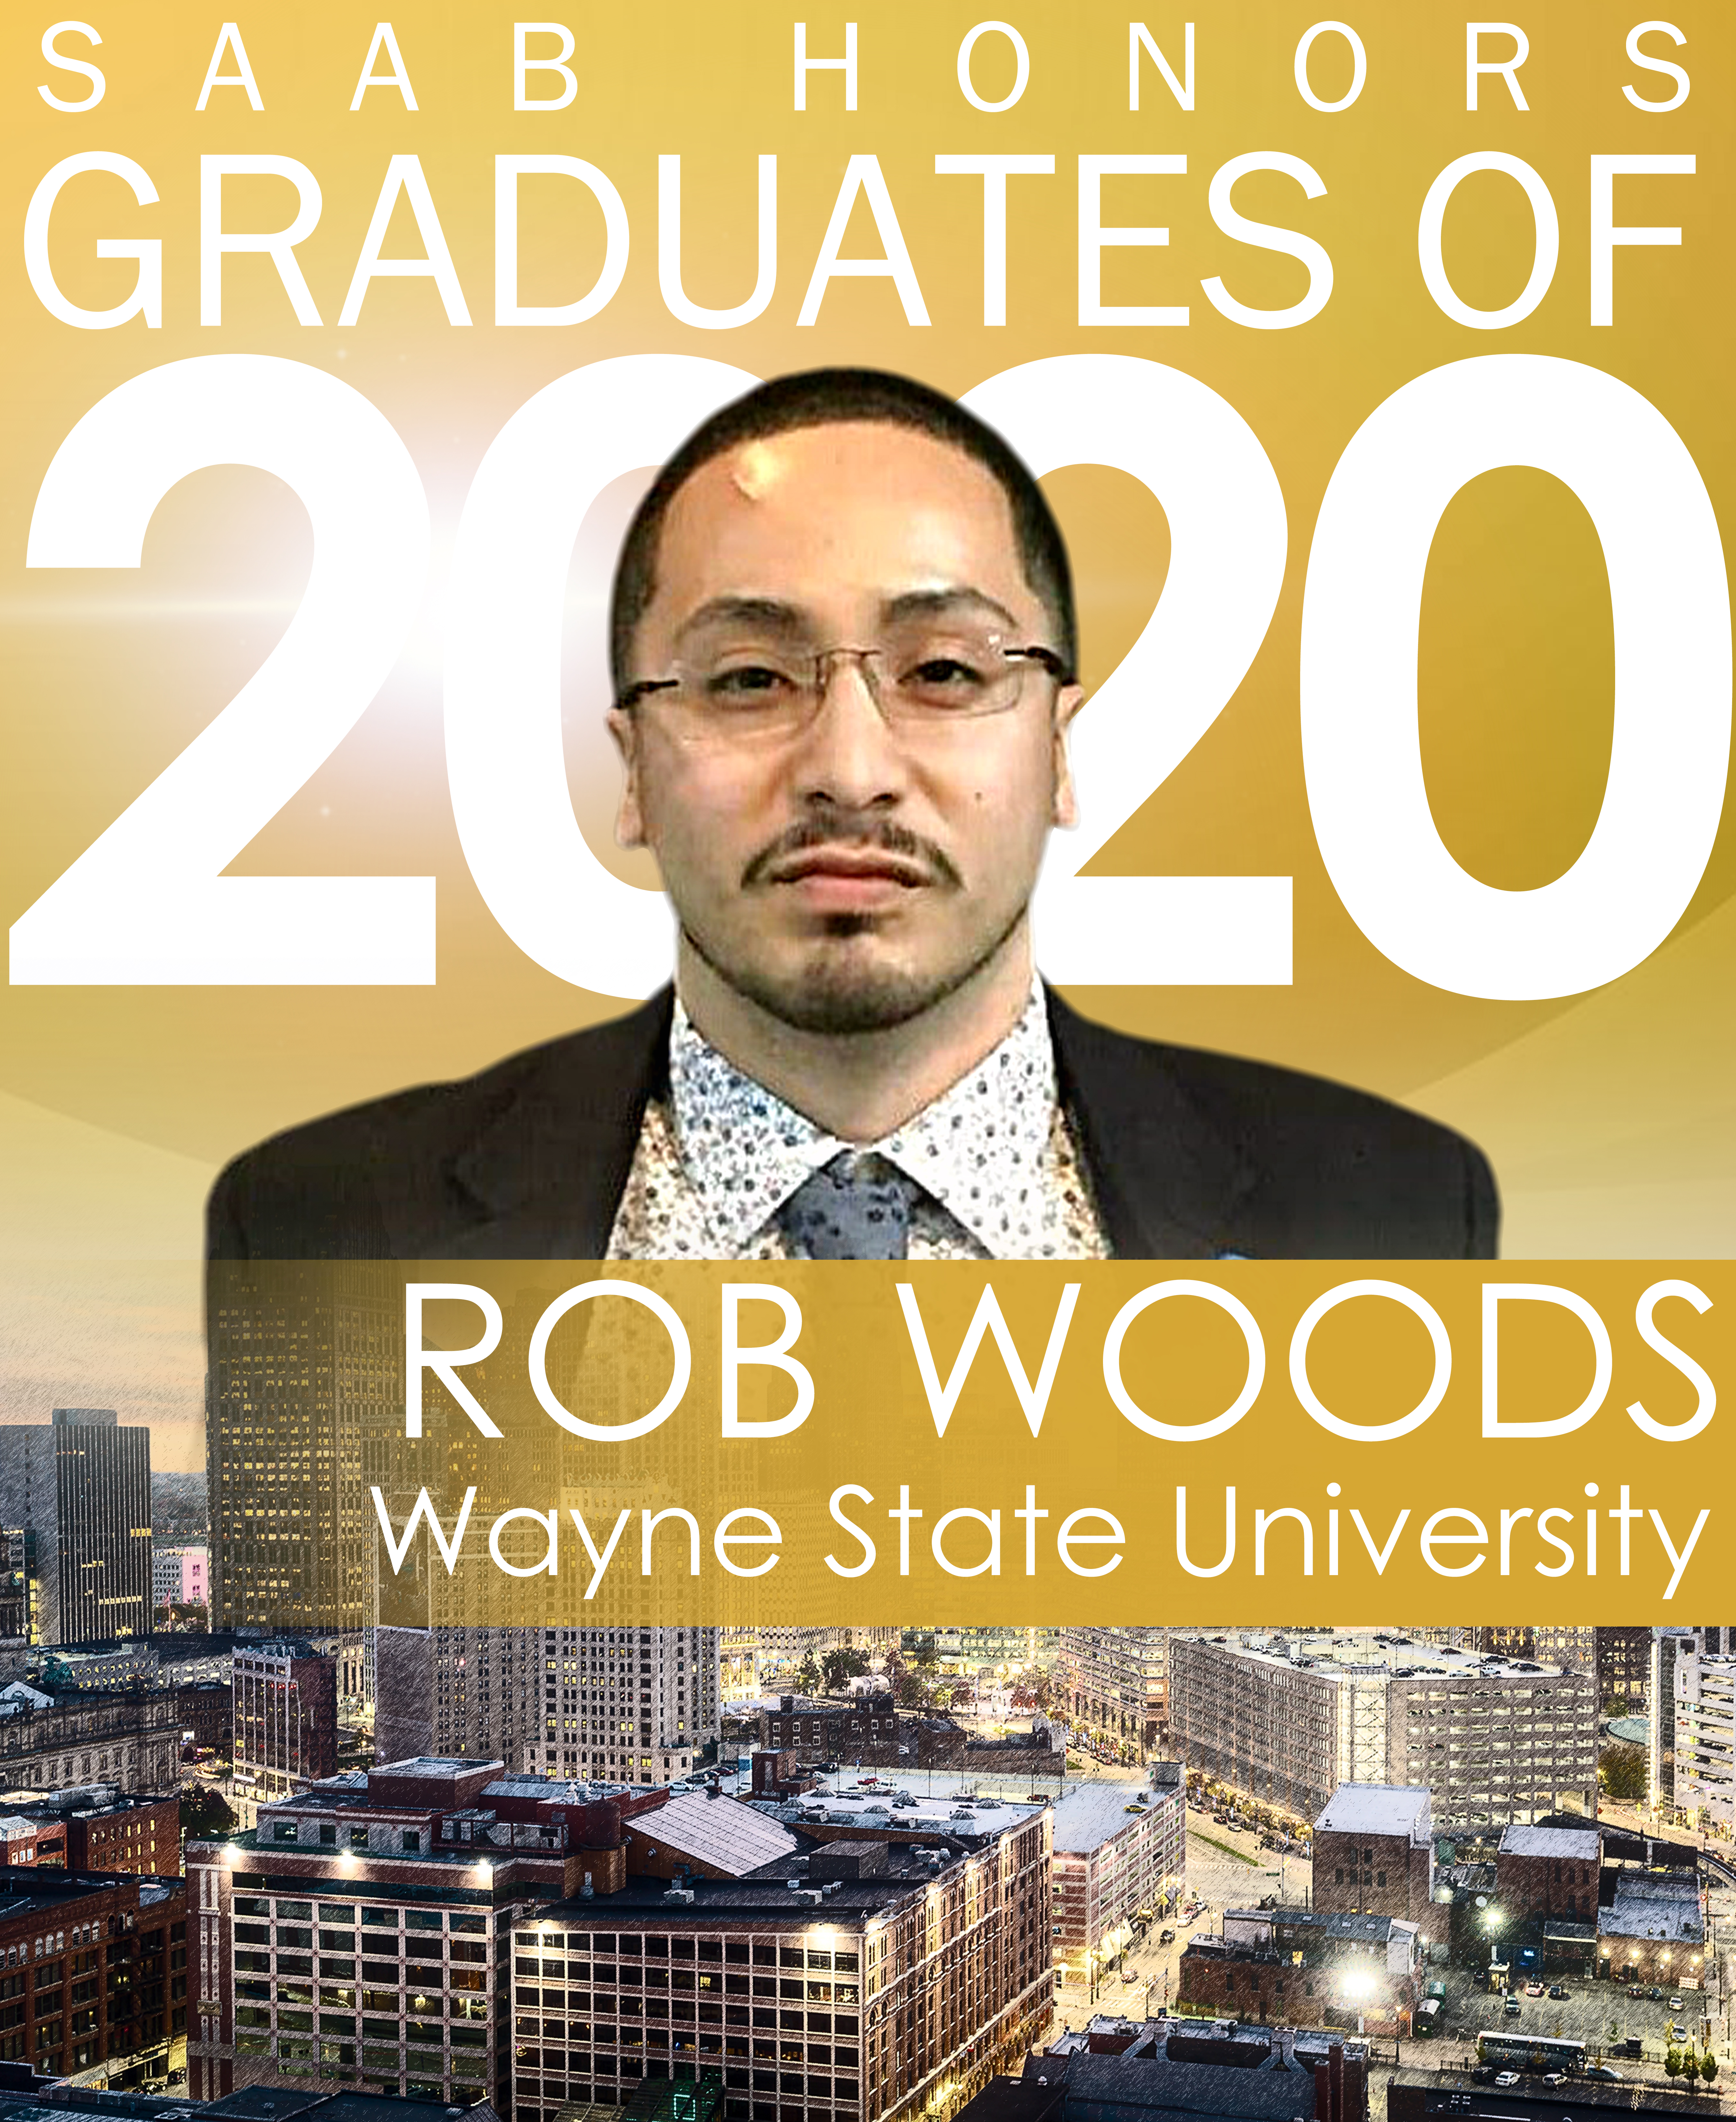 Rob Woods 2020 Graduation